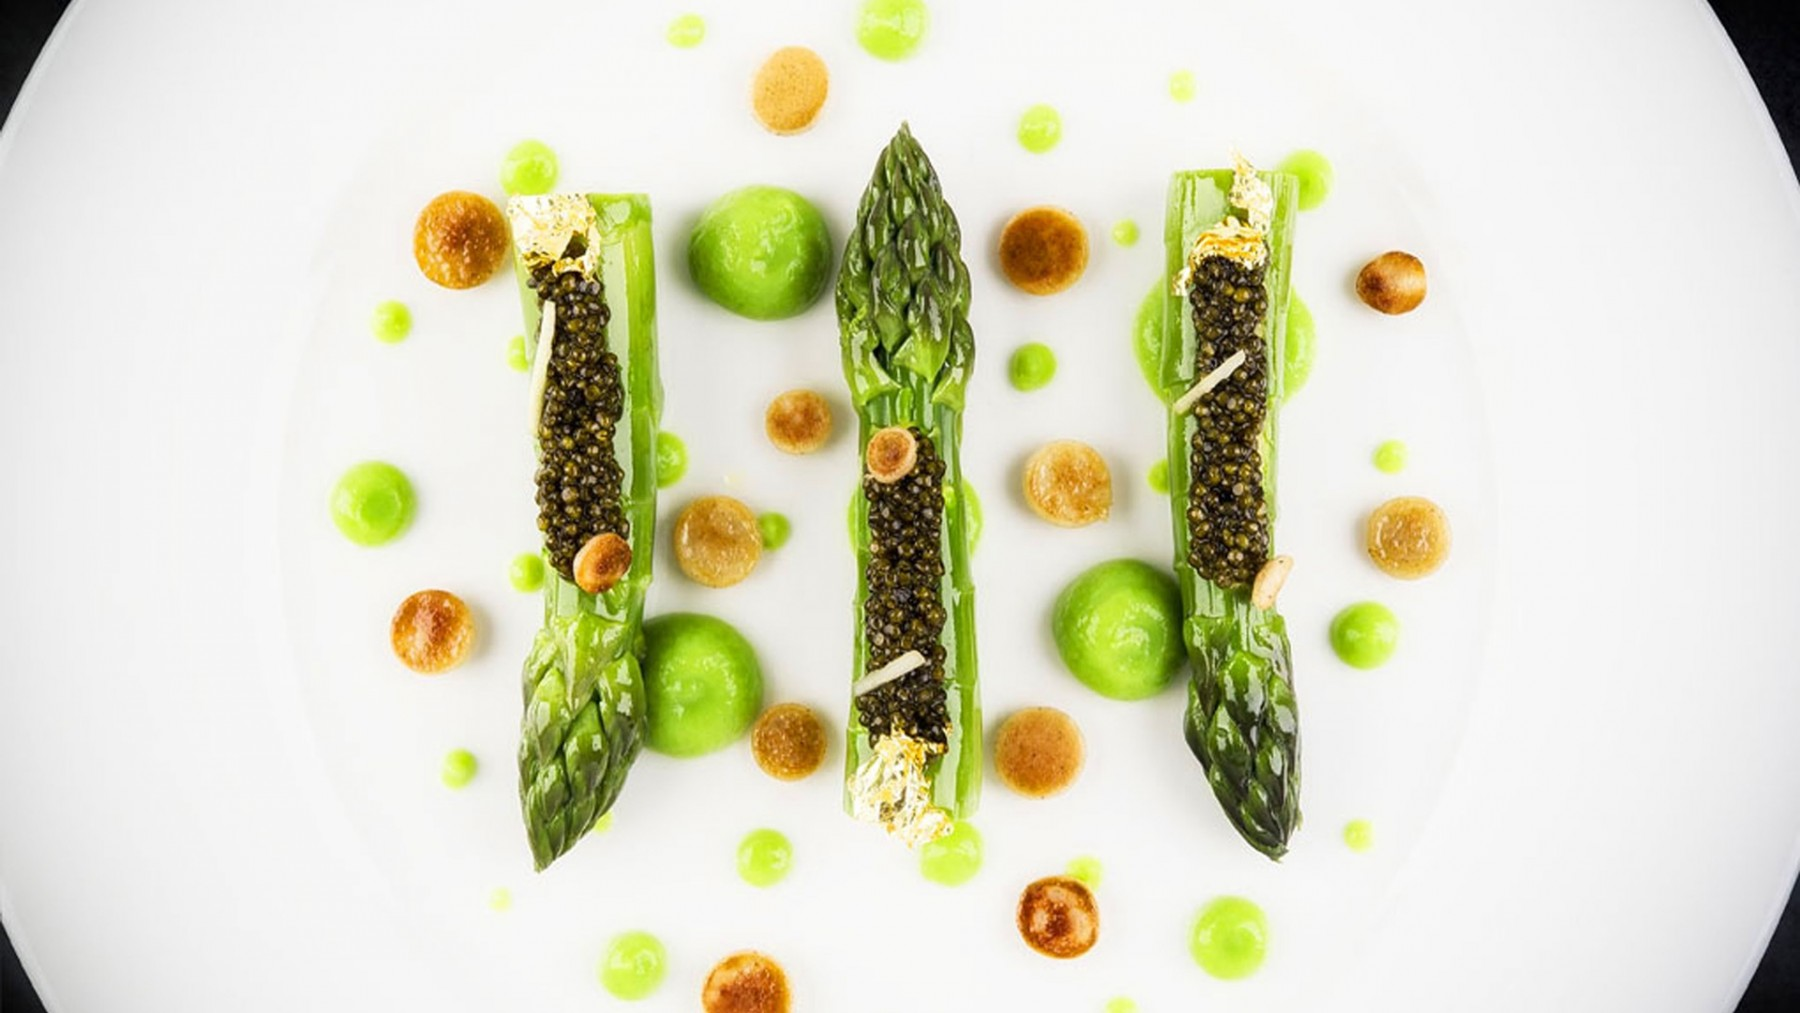 michelin-starred-chef-julien-montbabut-march-2016